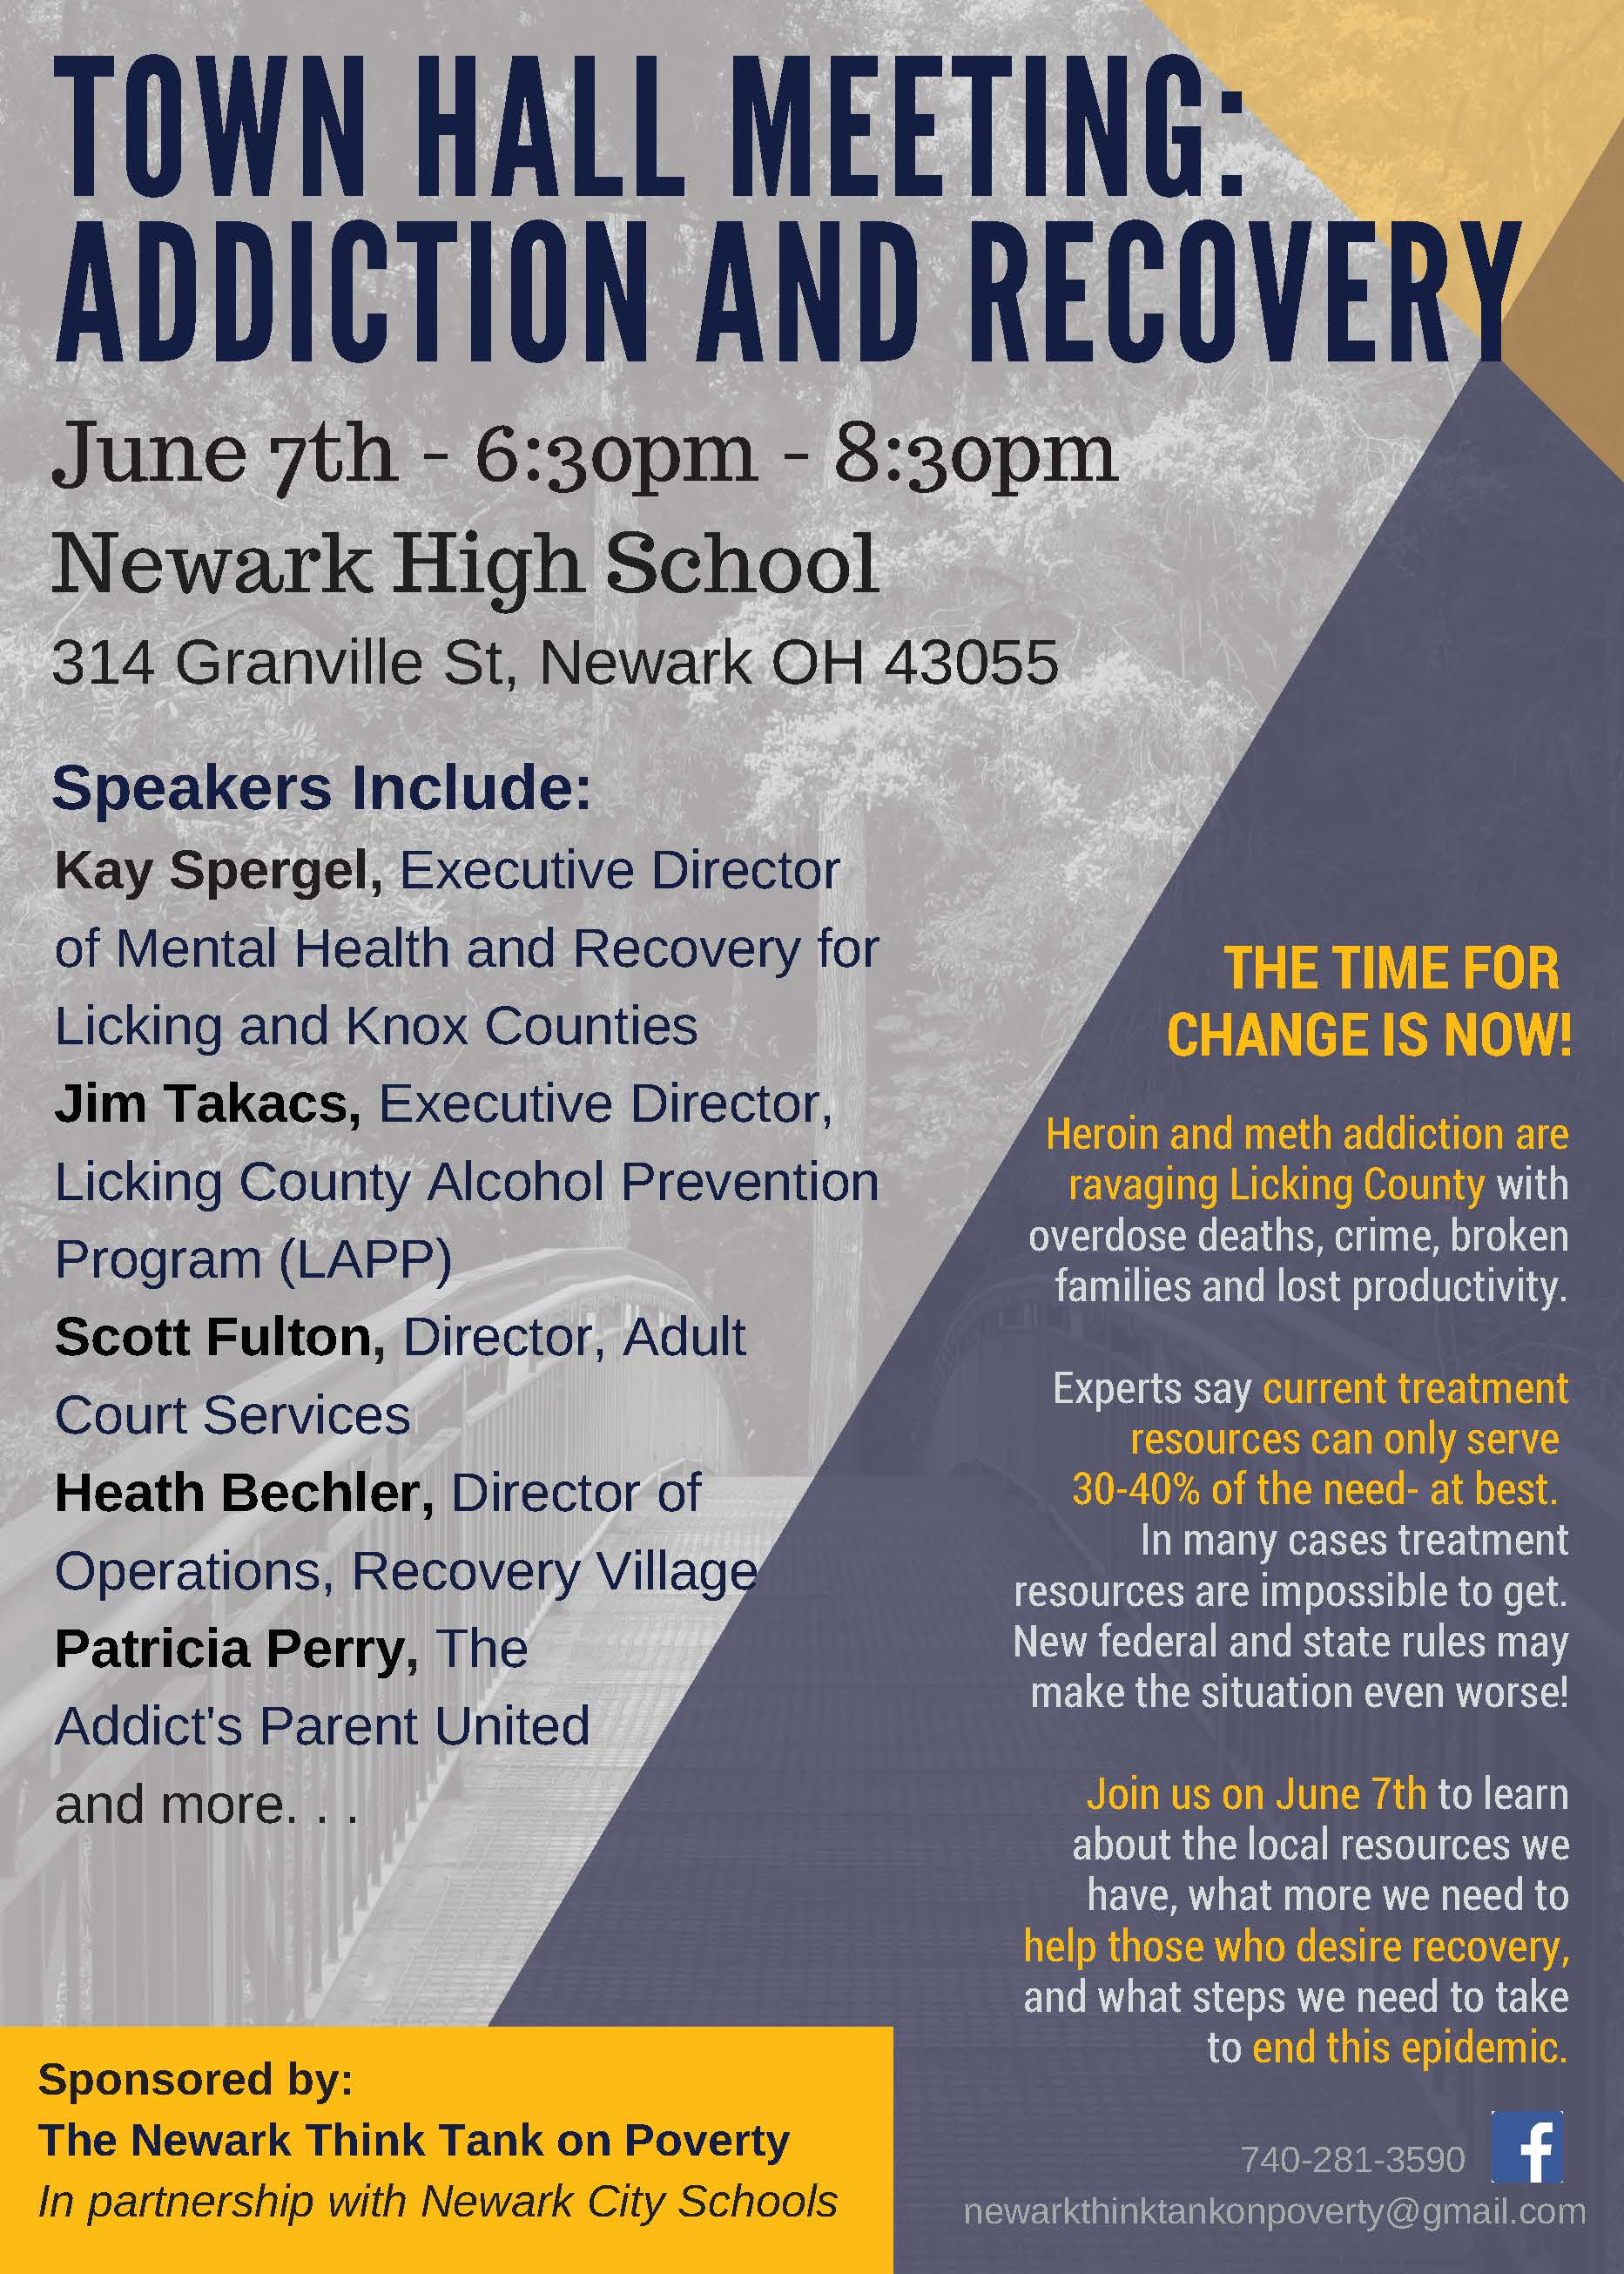 Think_Tank-Addiction_Town_Hall_flyer.jpg